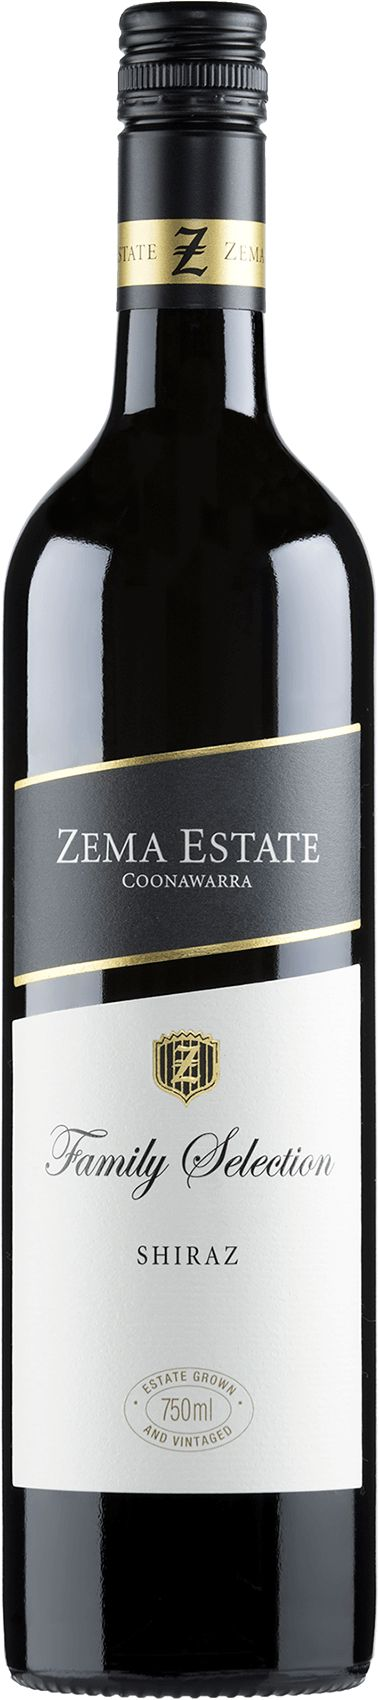 """A worthy partner in the """"Family Selection"""" range this is a wine of intense depth, concentration and ageing ability. A fuller style of excellent balance and structure. Spicy pepper and sweet berry fruit flavours, the finish is long with firm oak tannins. Cellaring will allow this fine wine to develop further depth and complexity."""